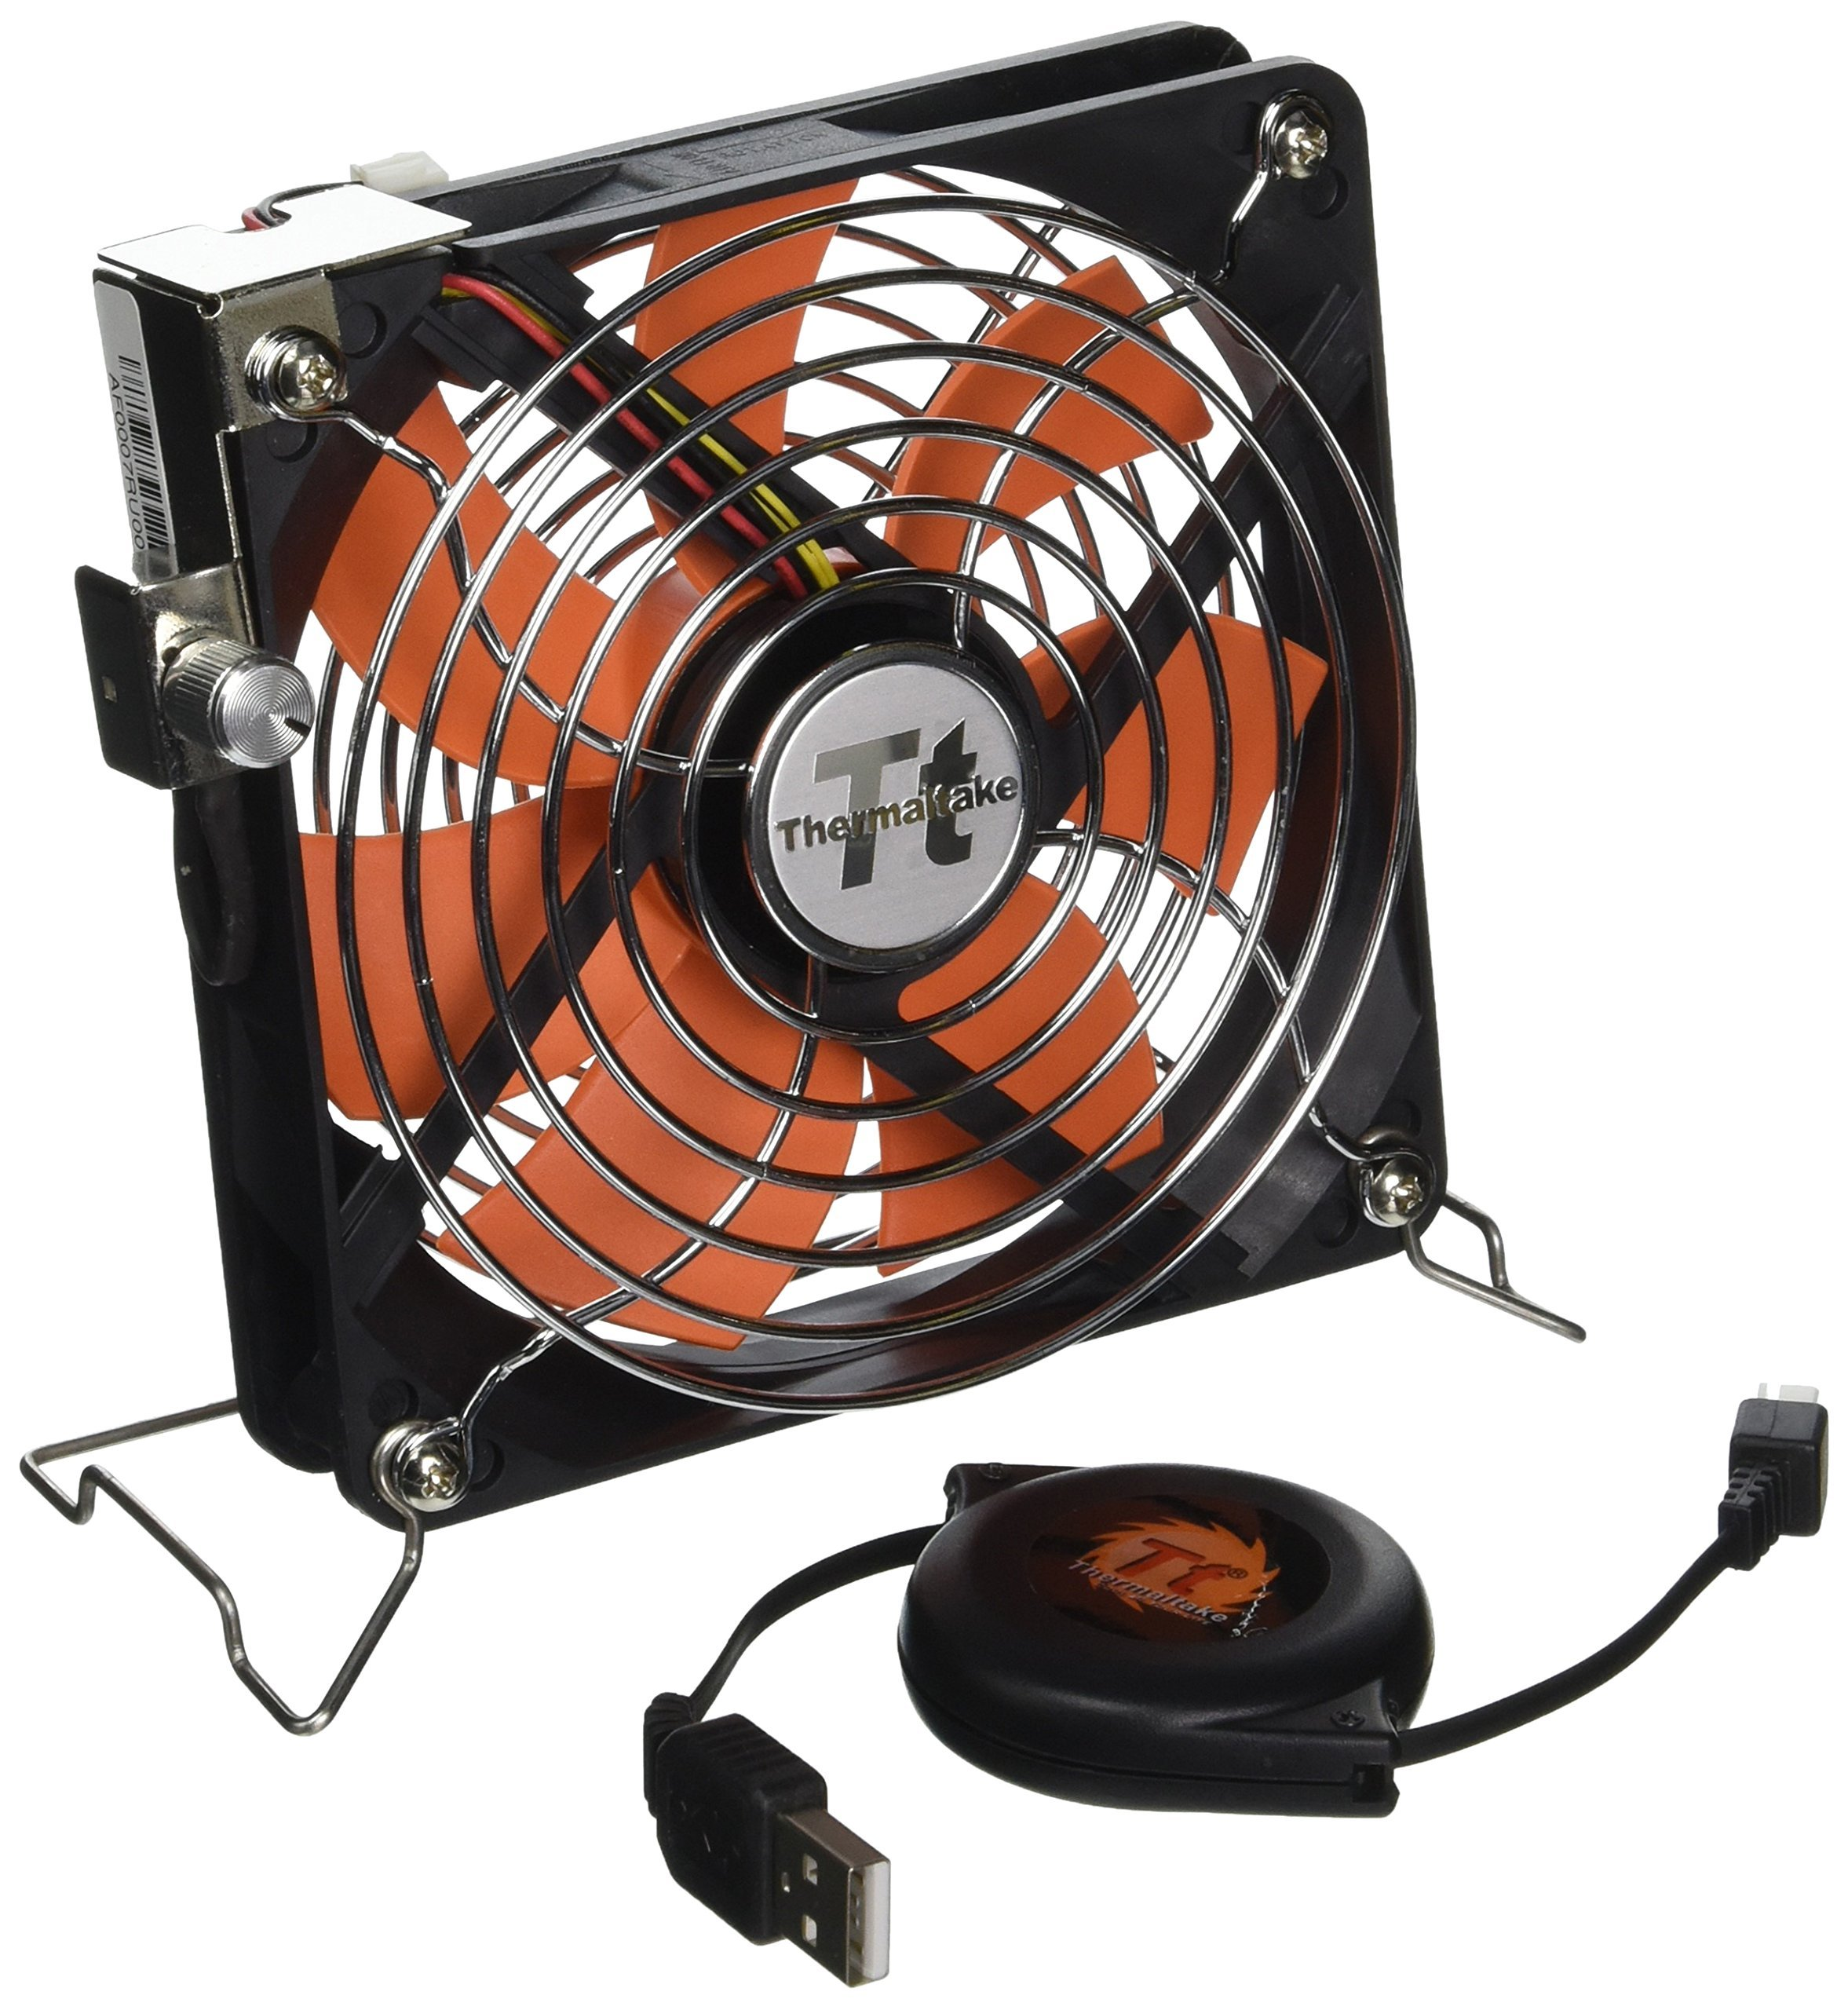 Thermaltake Mobile Fan 12 External USB Cooling 120mm Fan with One-touch Retractable USB power cable box for Notebook Laptop Desktop. AF0007 by Thermaltake (Image #1)